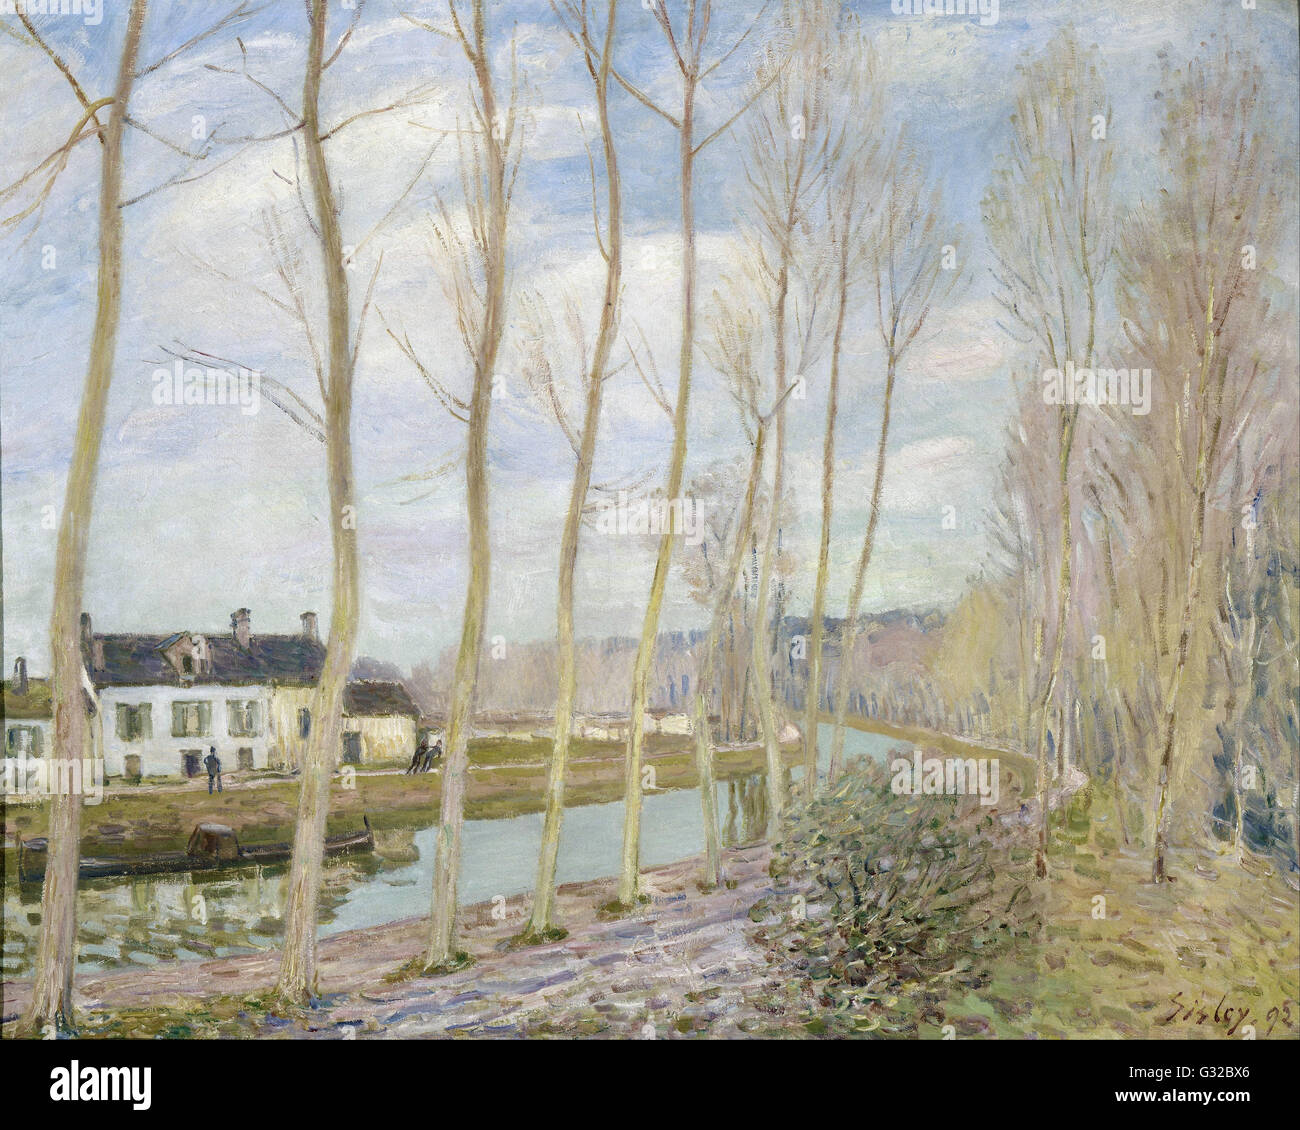 Alfred Sisley - The Loing's Canal   - Musée d'Orsay, Paris - Stock Image